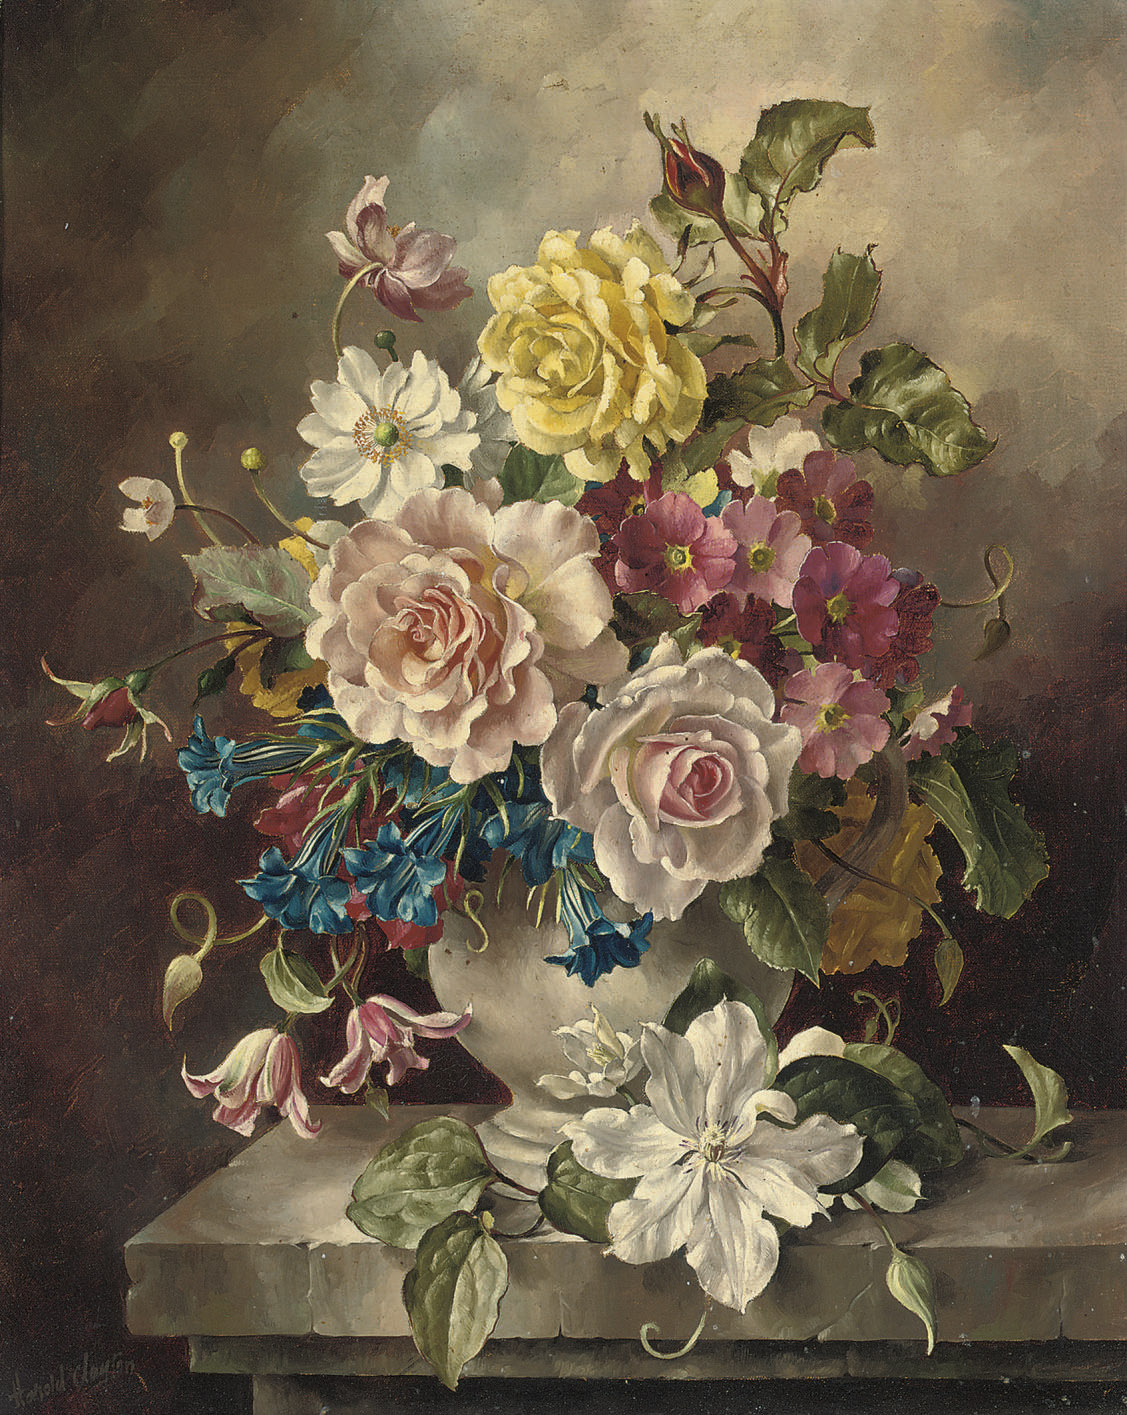 Roses, convolvulus, and other flowers in a vase, on a ledge